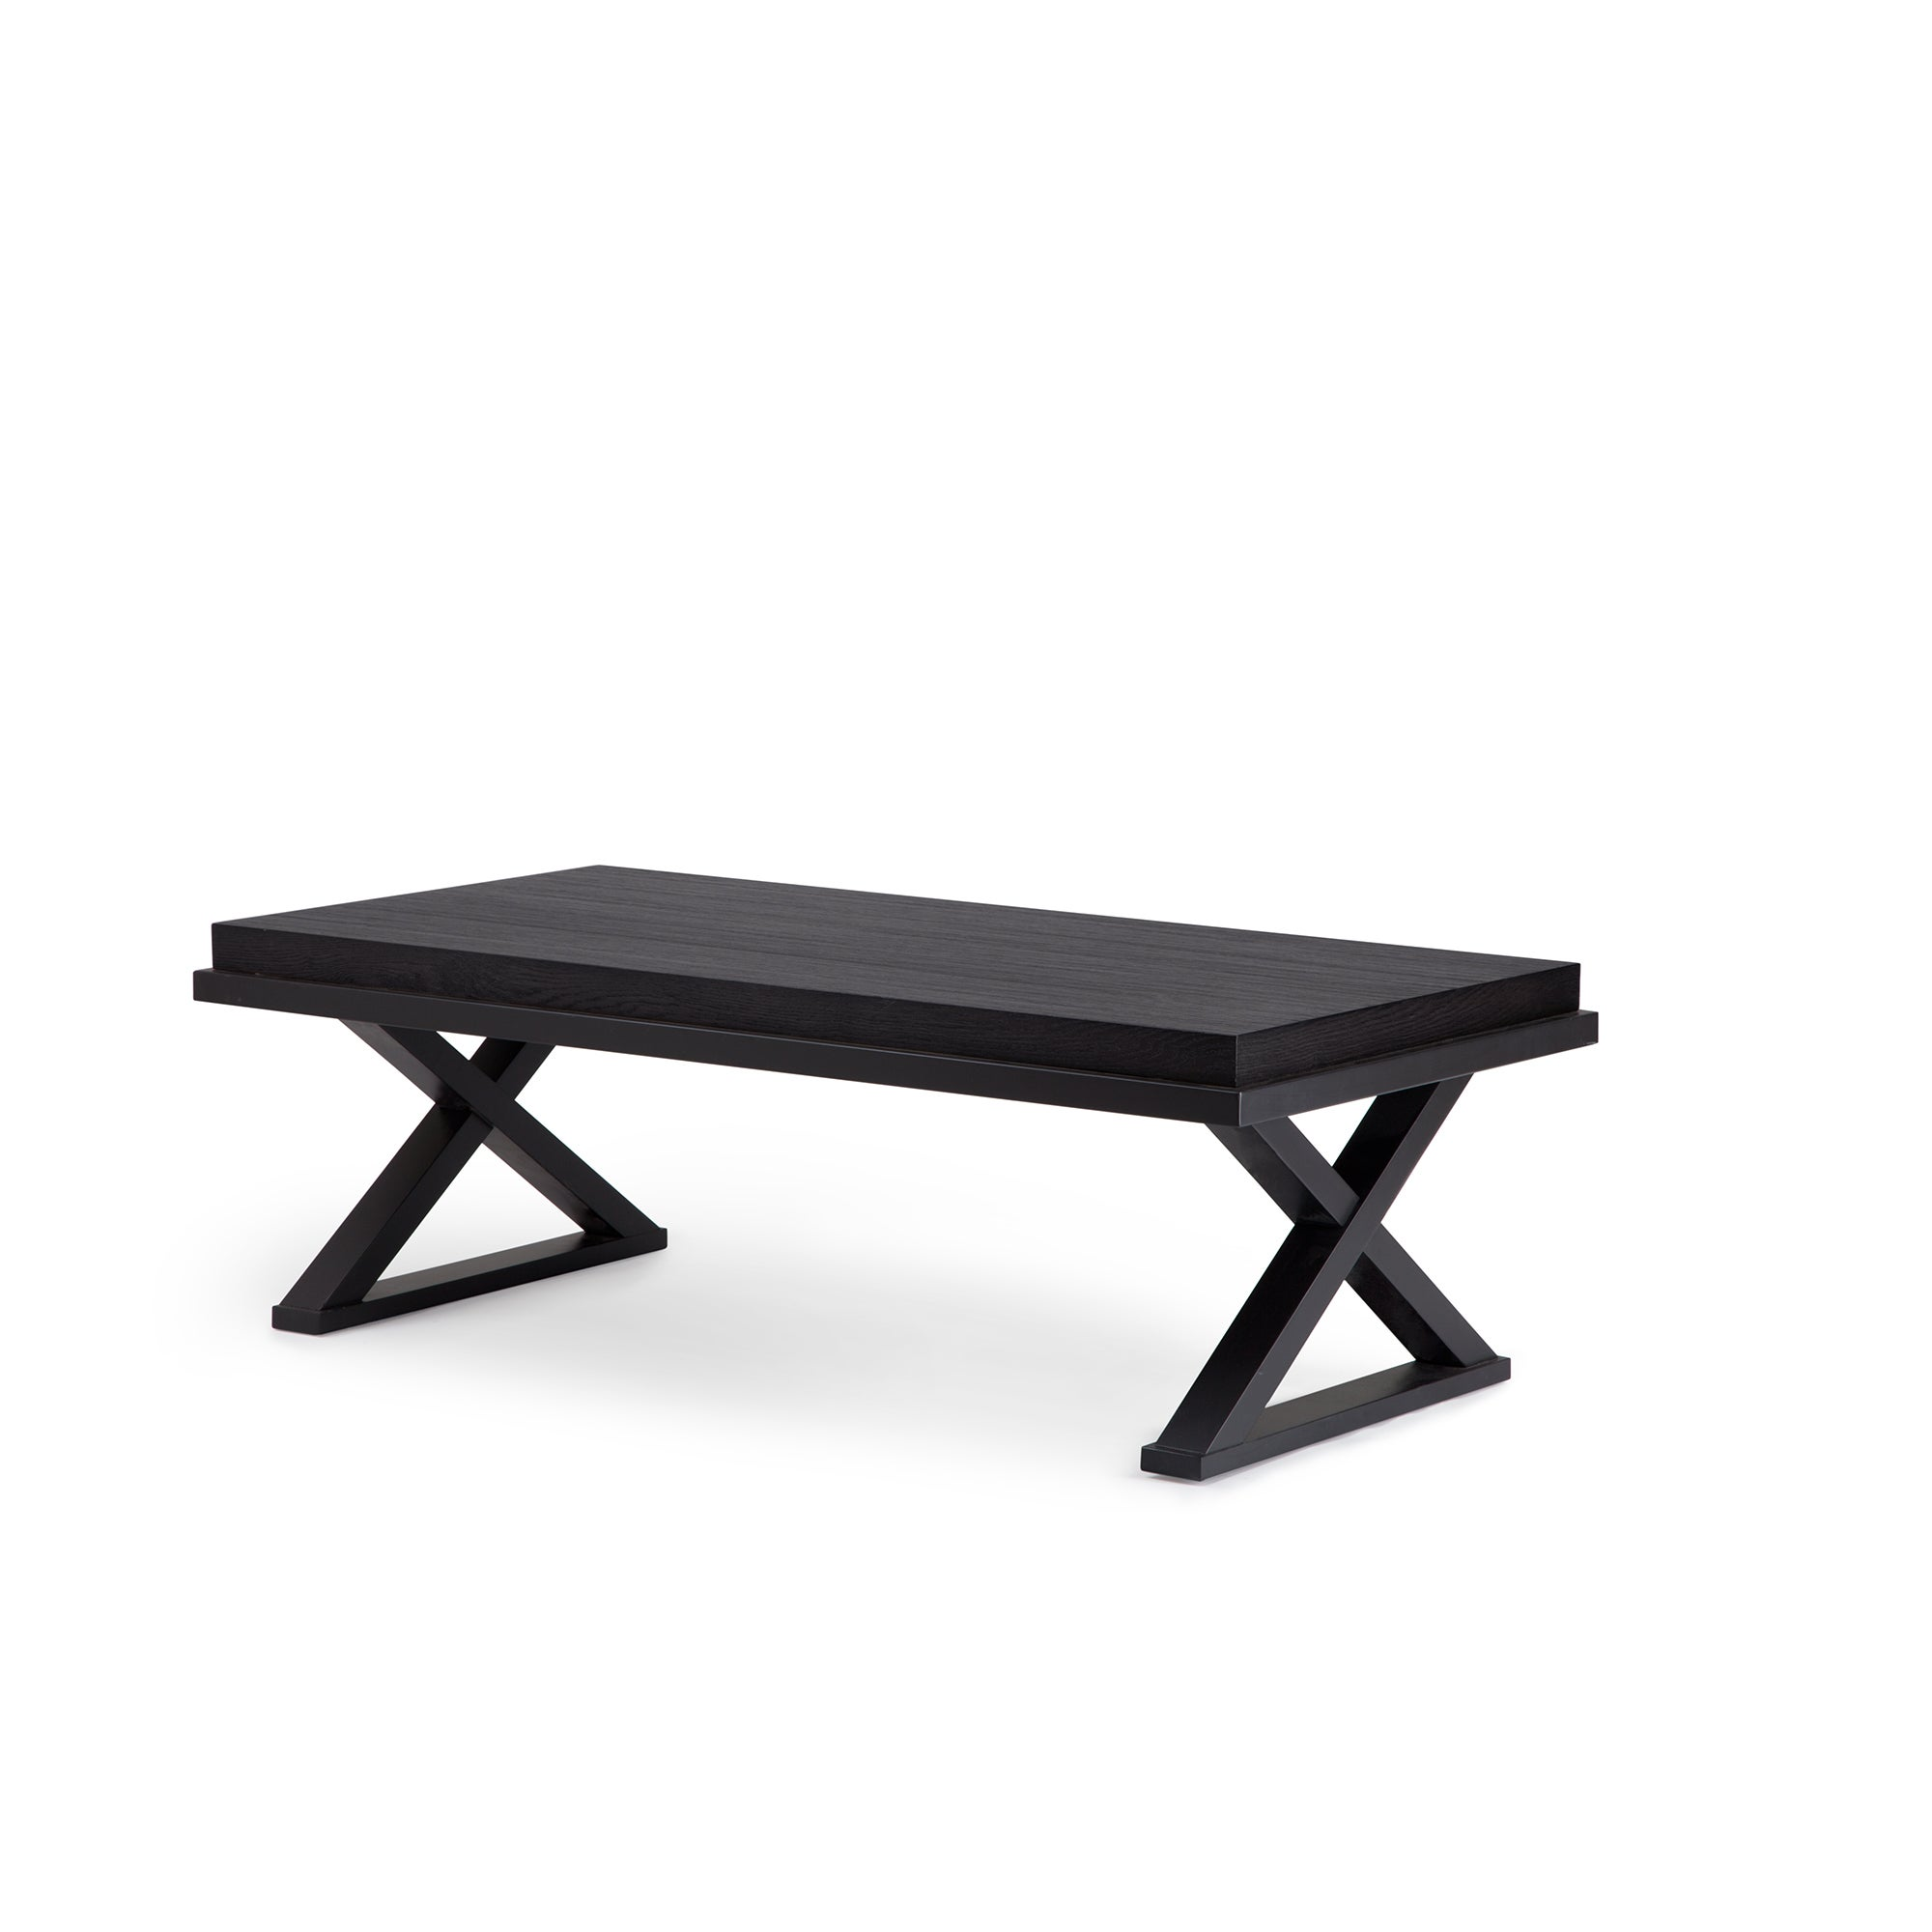 Shop tao yukon cocoa and dark chocolate wood rectangular coffee table free shipping today overstock com 17983019